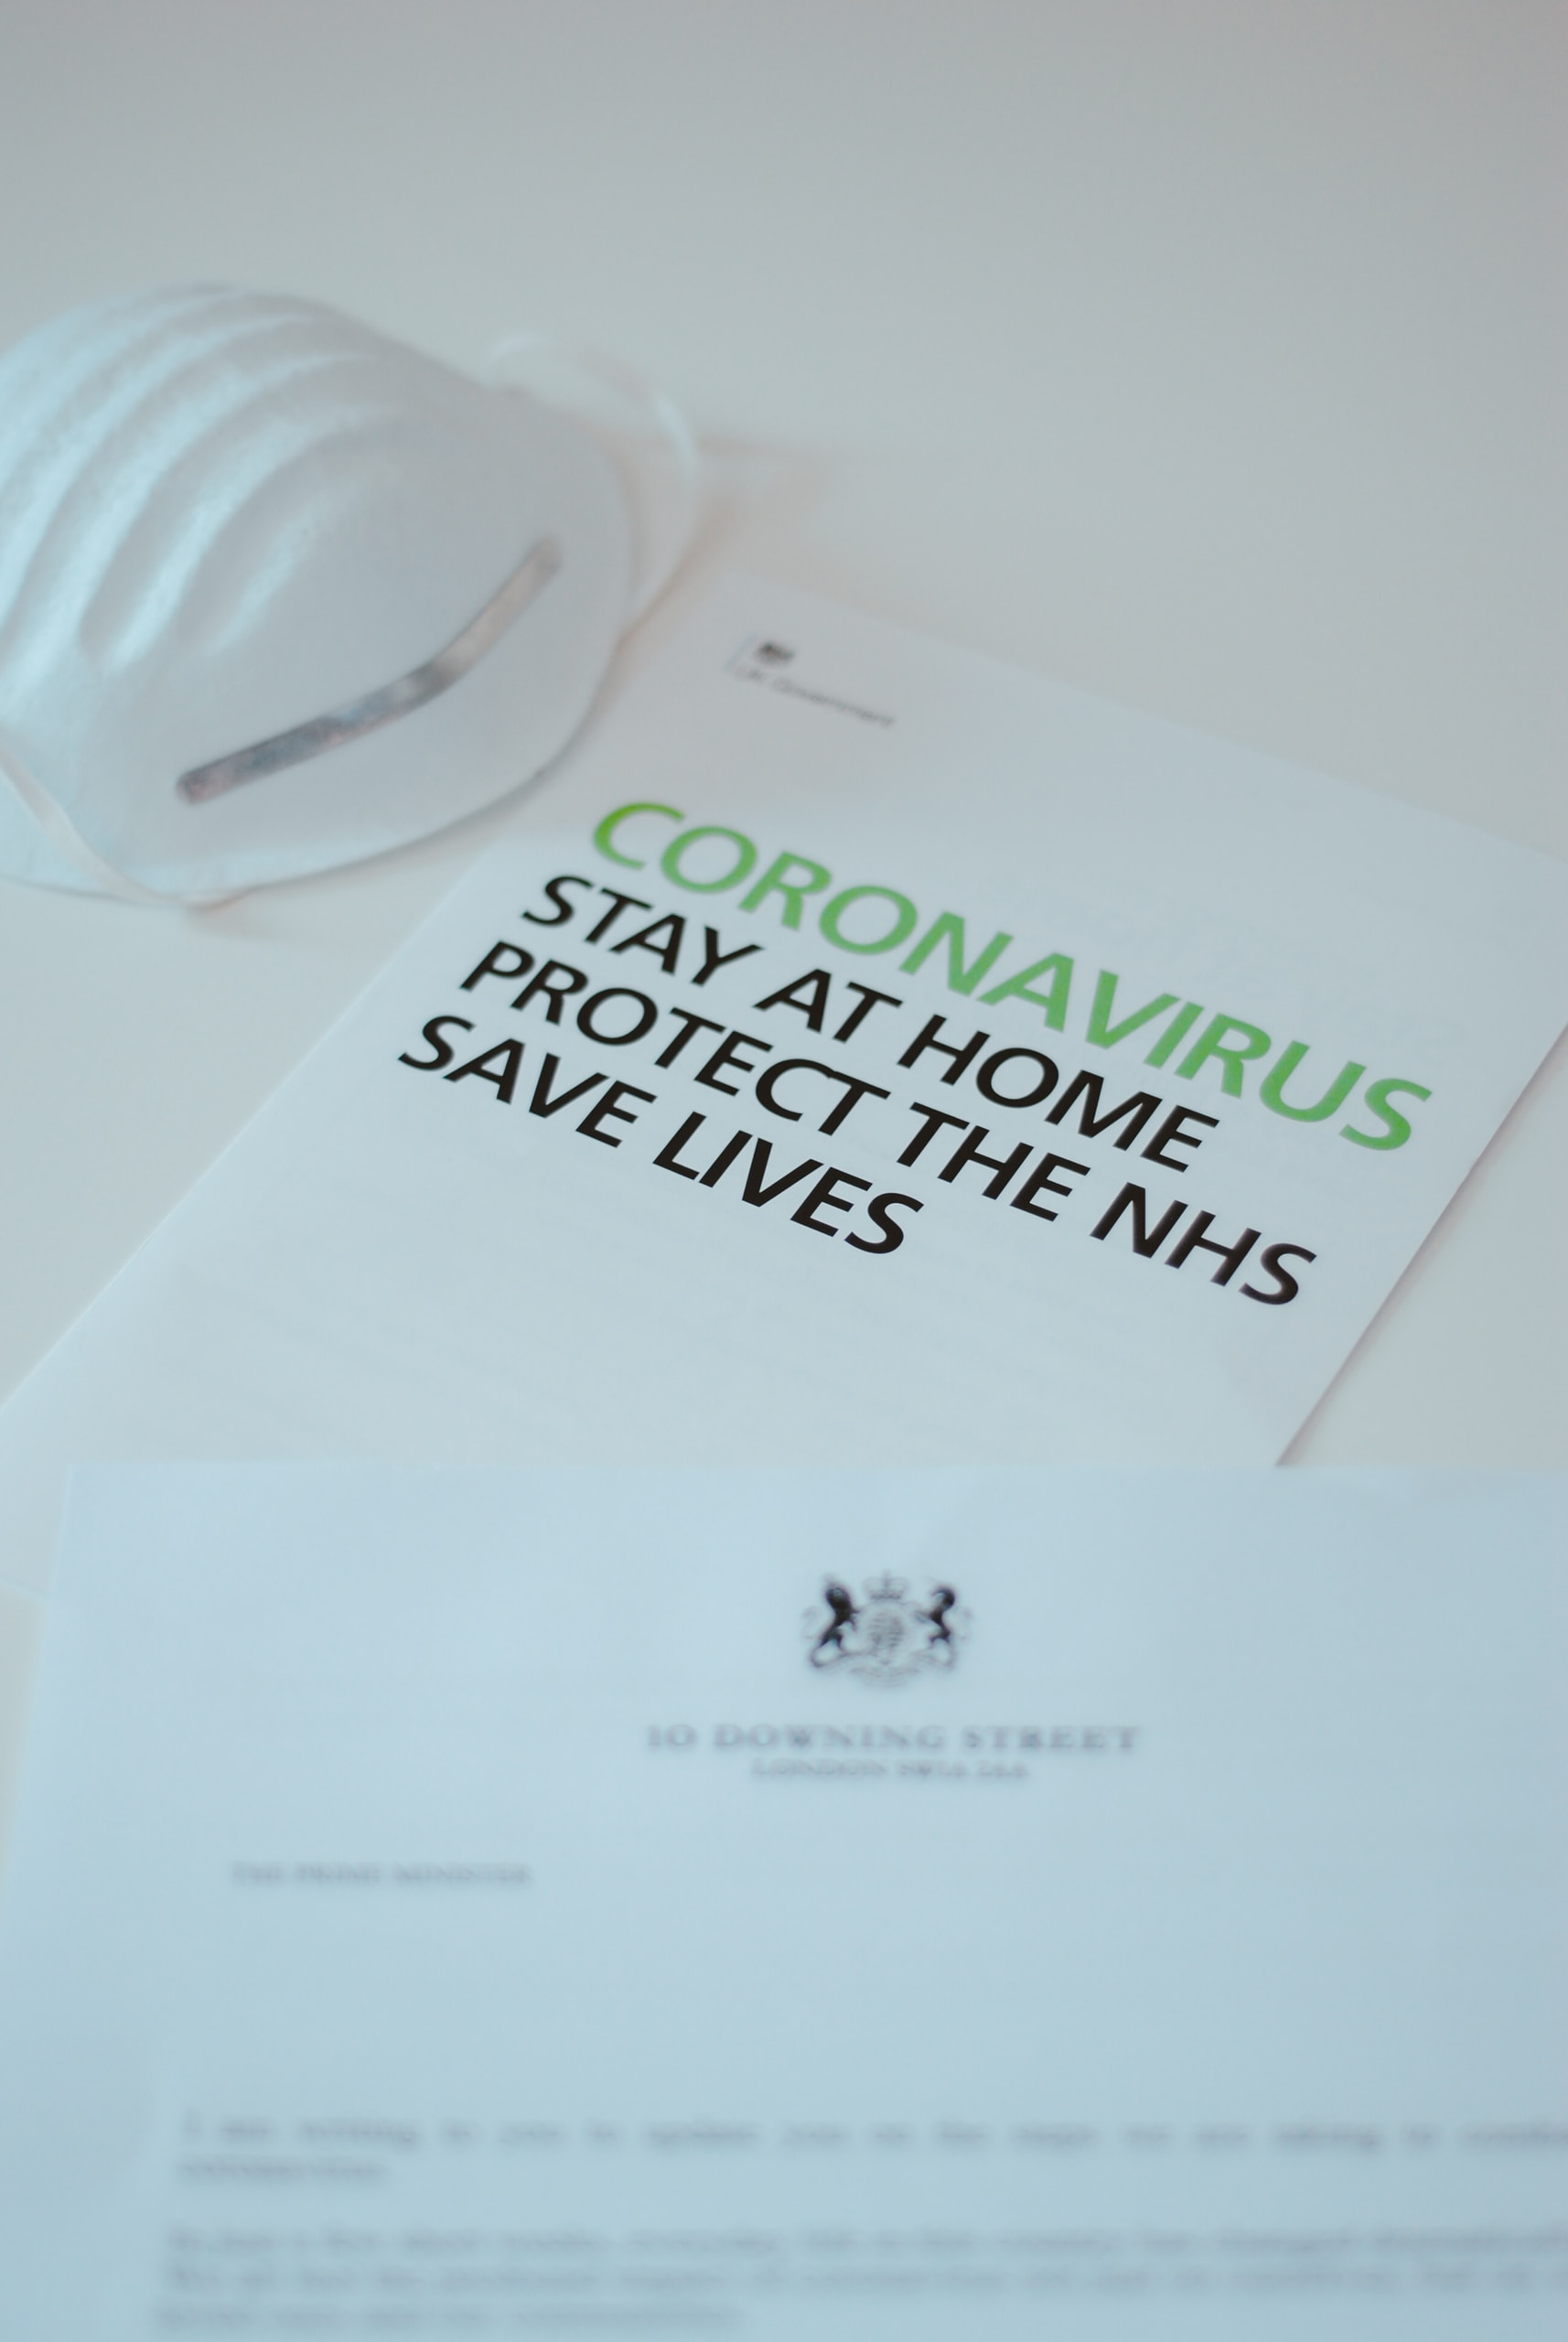 Coronavirus policy image - Stay at Home Protect the NHS Save Lives